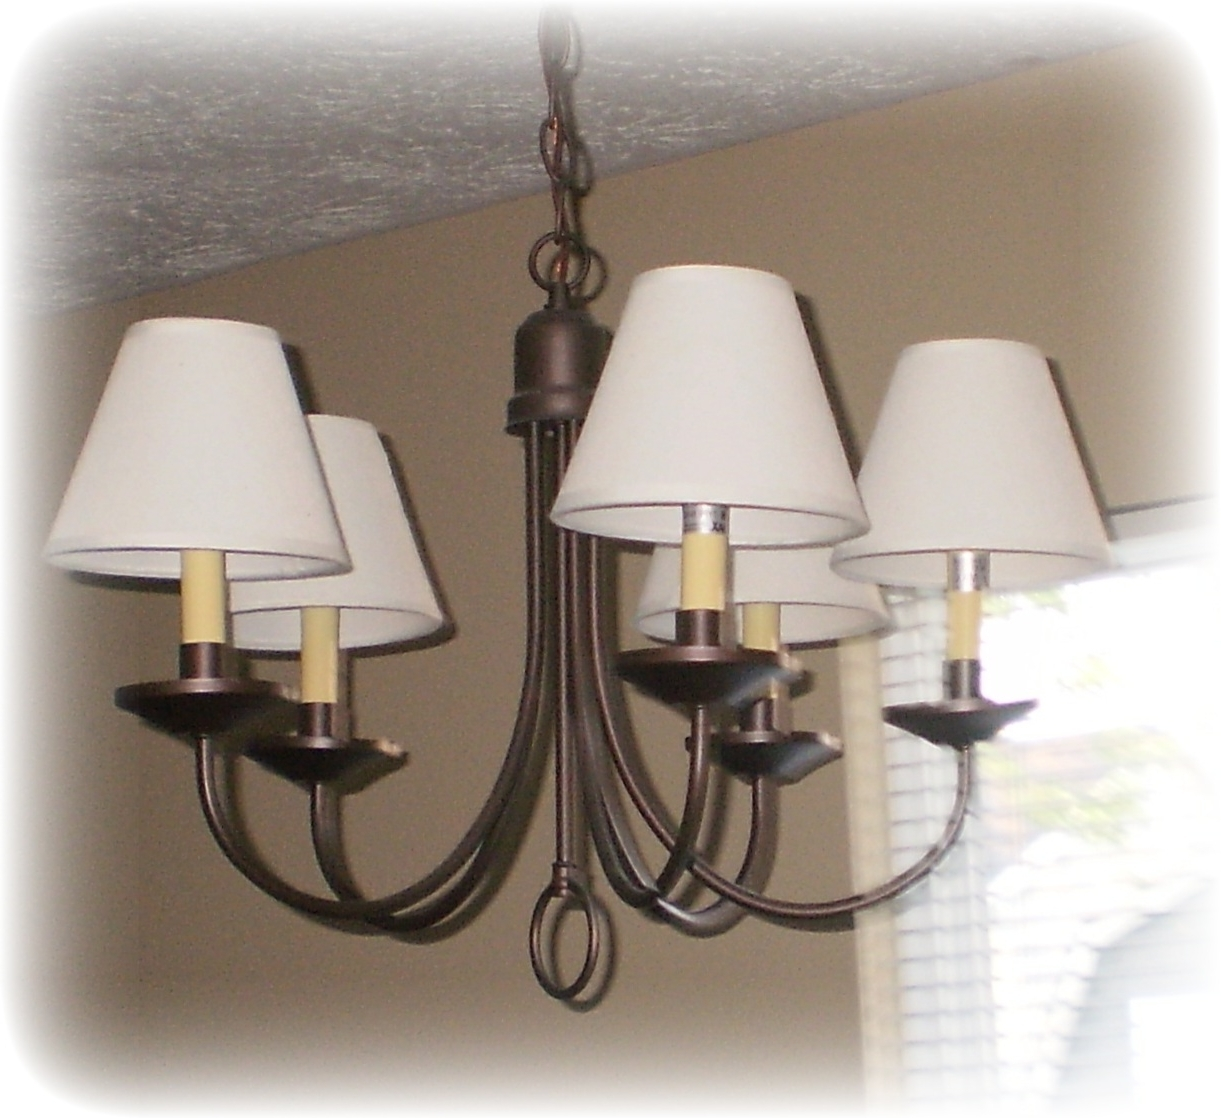 Furniture : Mini Chandelier Shades Discount Fabulous 8 Mini With Regard To Most Up To Date Chandelier Lampshades (View 12 of 15)